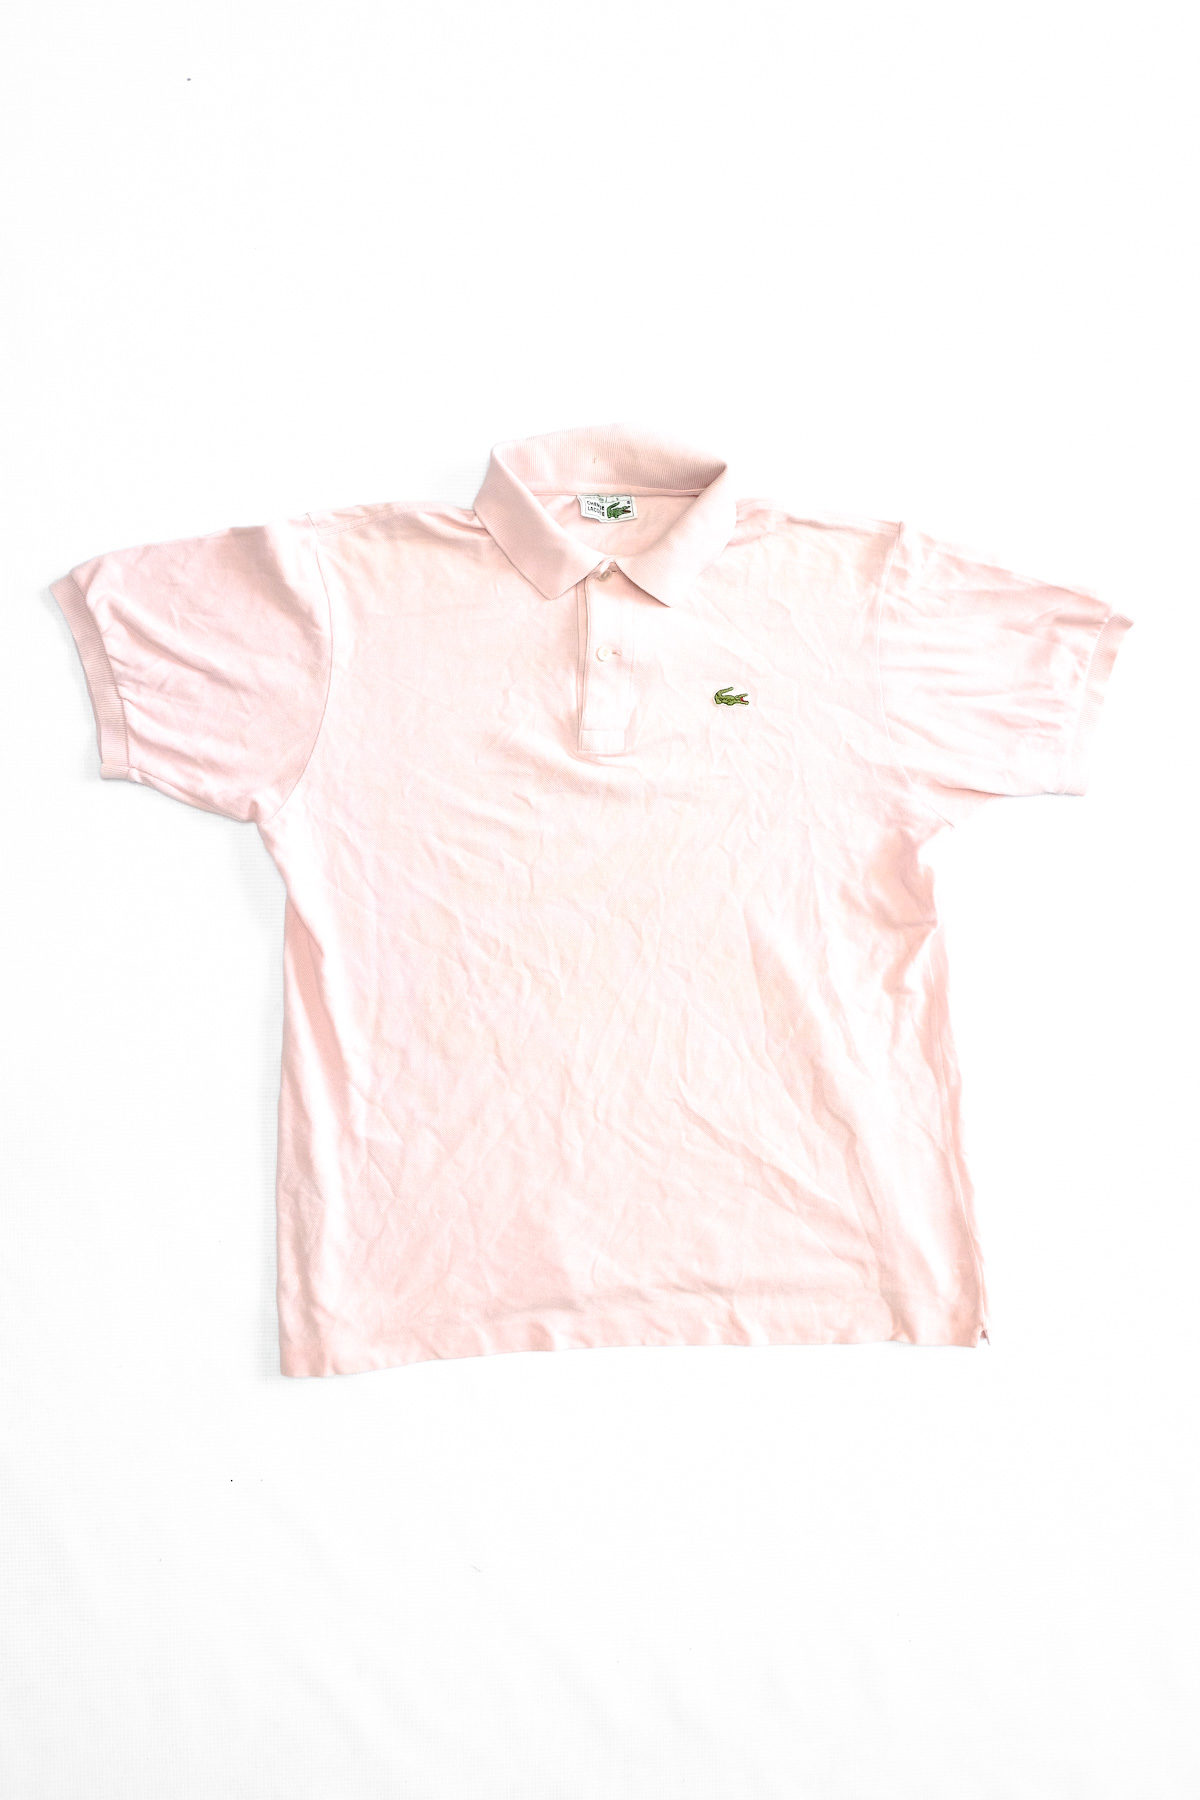 Lacoste POLO VINTAGE Pink Cadillac